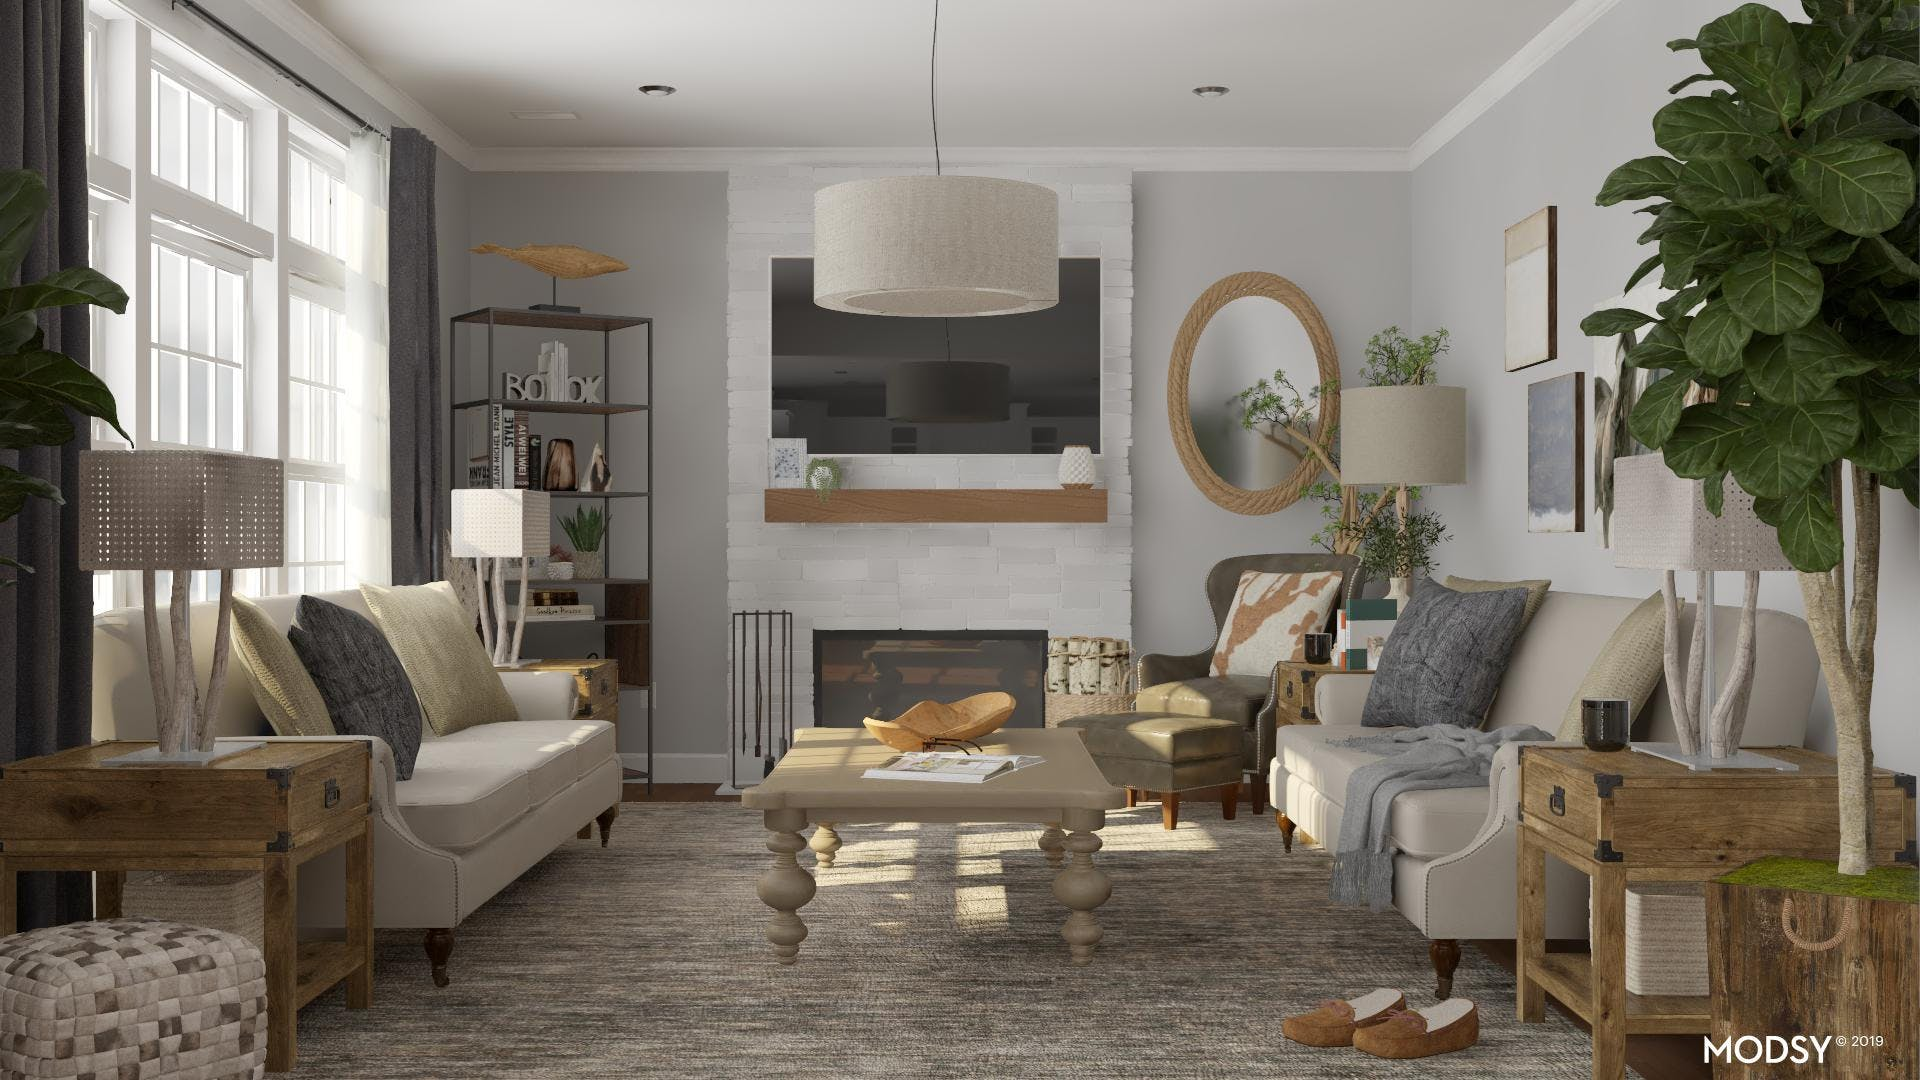 A Rustic Mix: Lush Textures